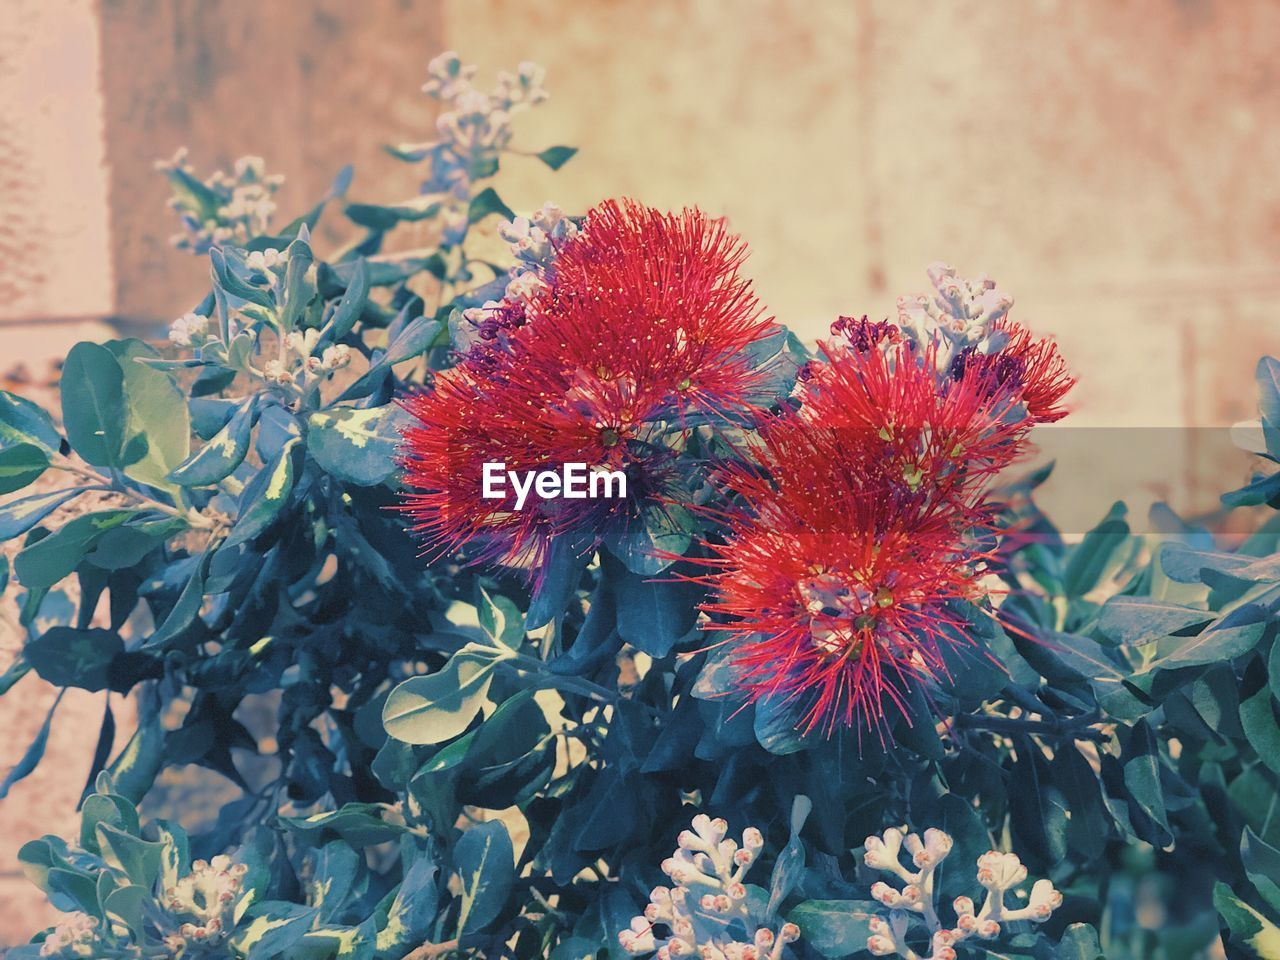 flowering plant, flower, plant, beauty in nature, vulnerability, close-up, growth, fragility, nature, freshness, red, no people, petal, flower head, inflorescence, day, focus on foreground, plant part, leaf, outdoors